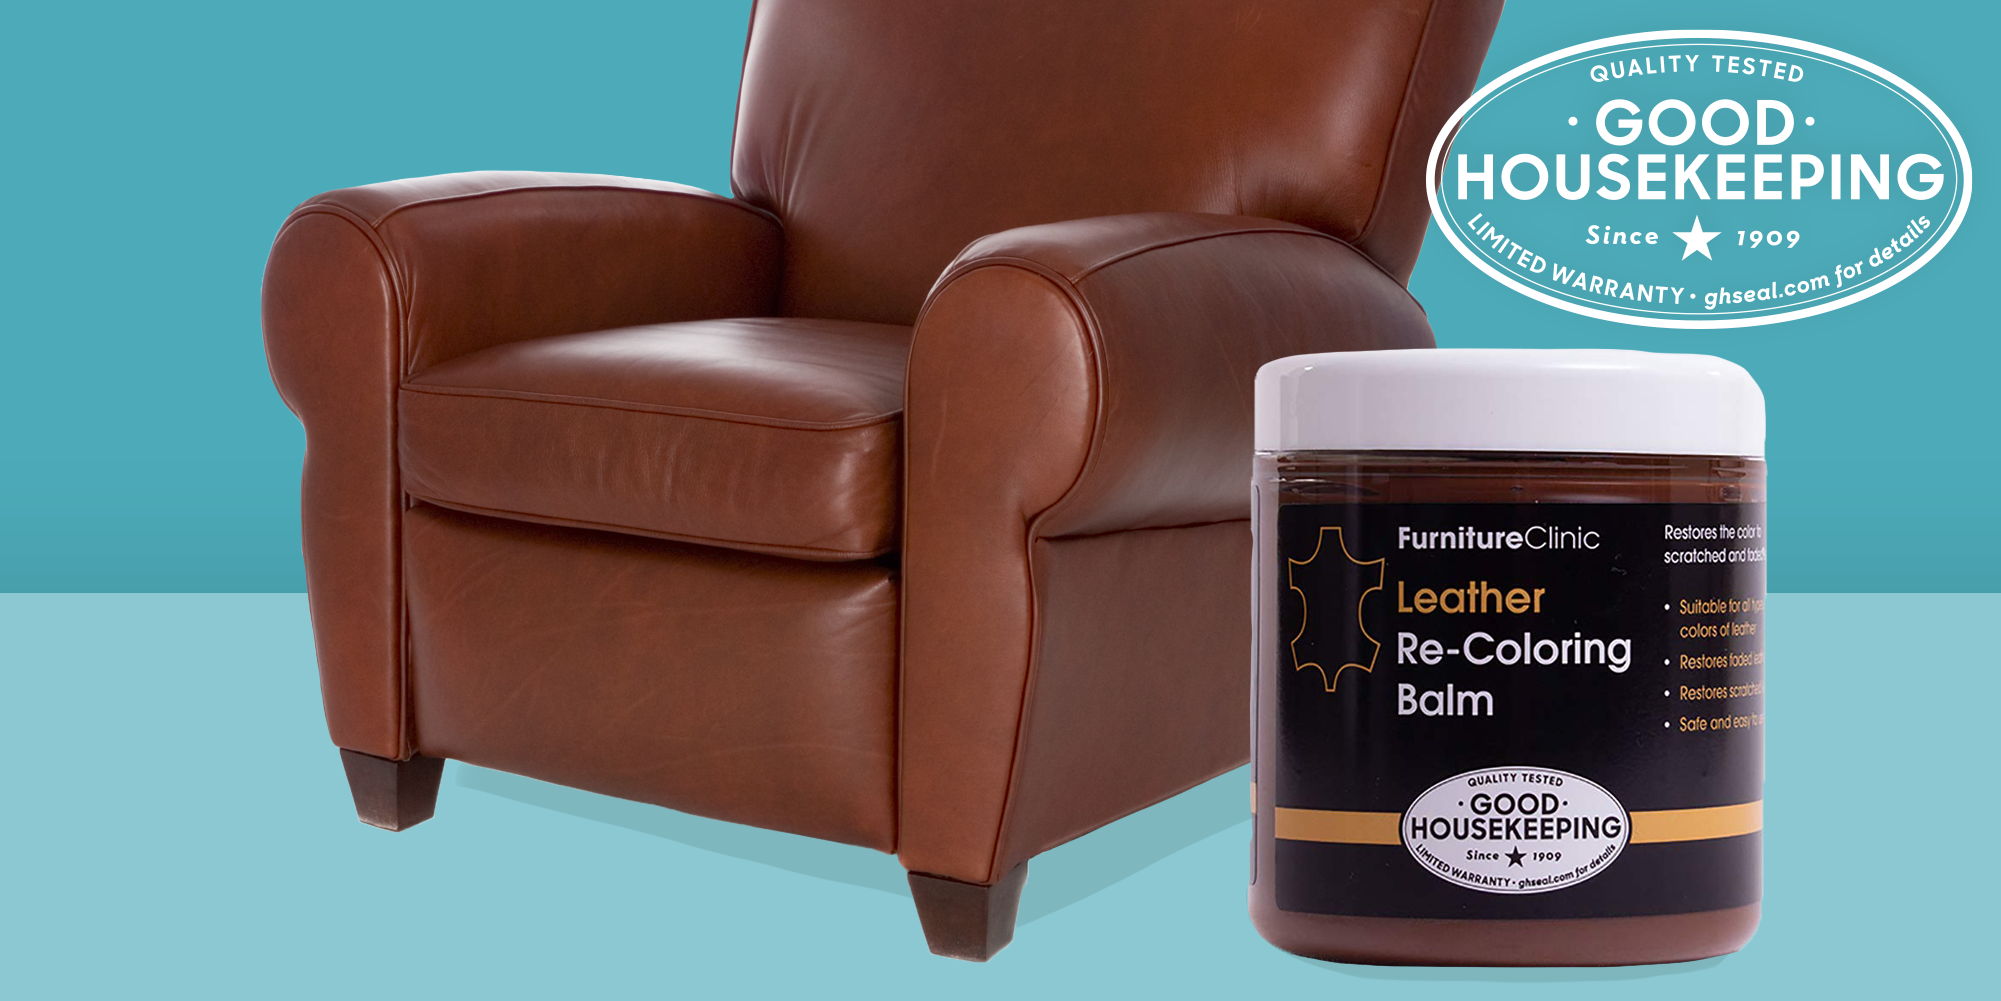 GH Seal Spotlight: Furniture Clinic Leather Re-Coloring Balm